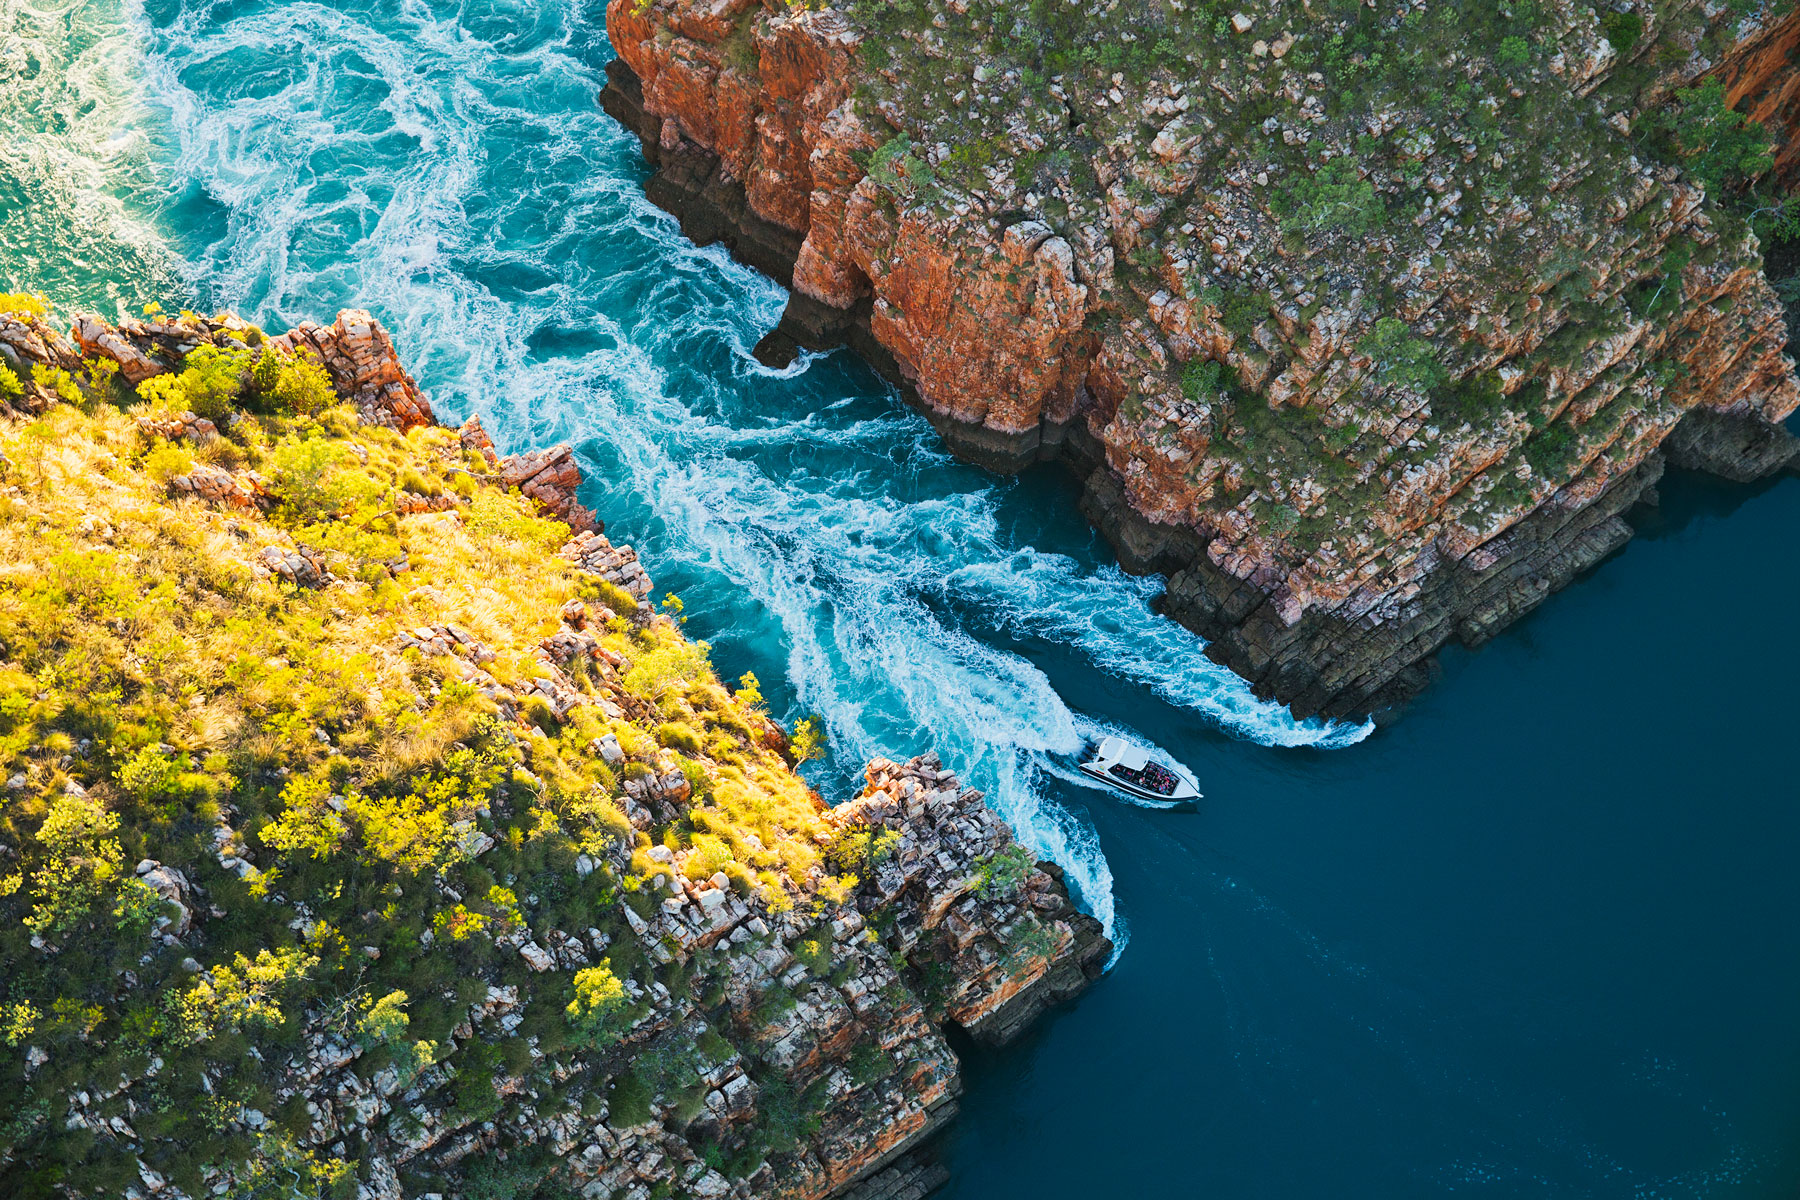 6. Horizontal Waterfalls